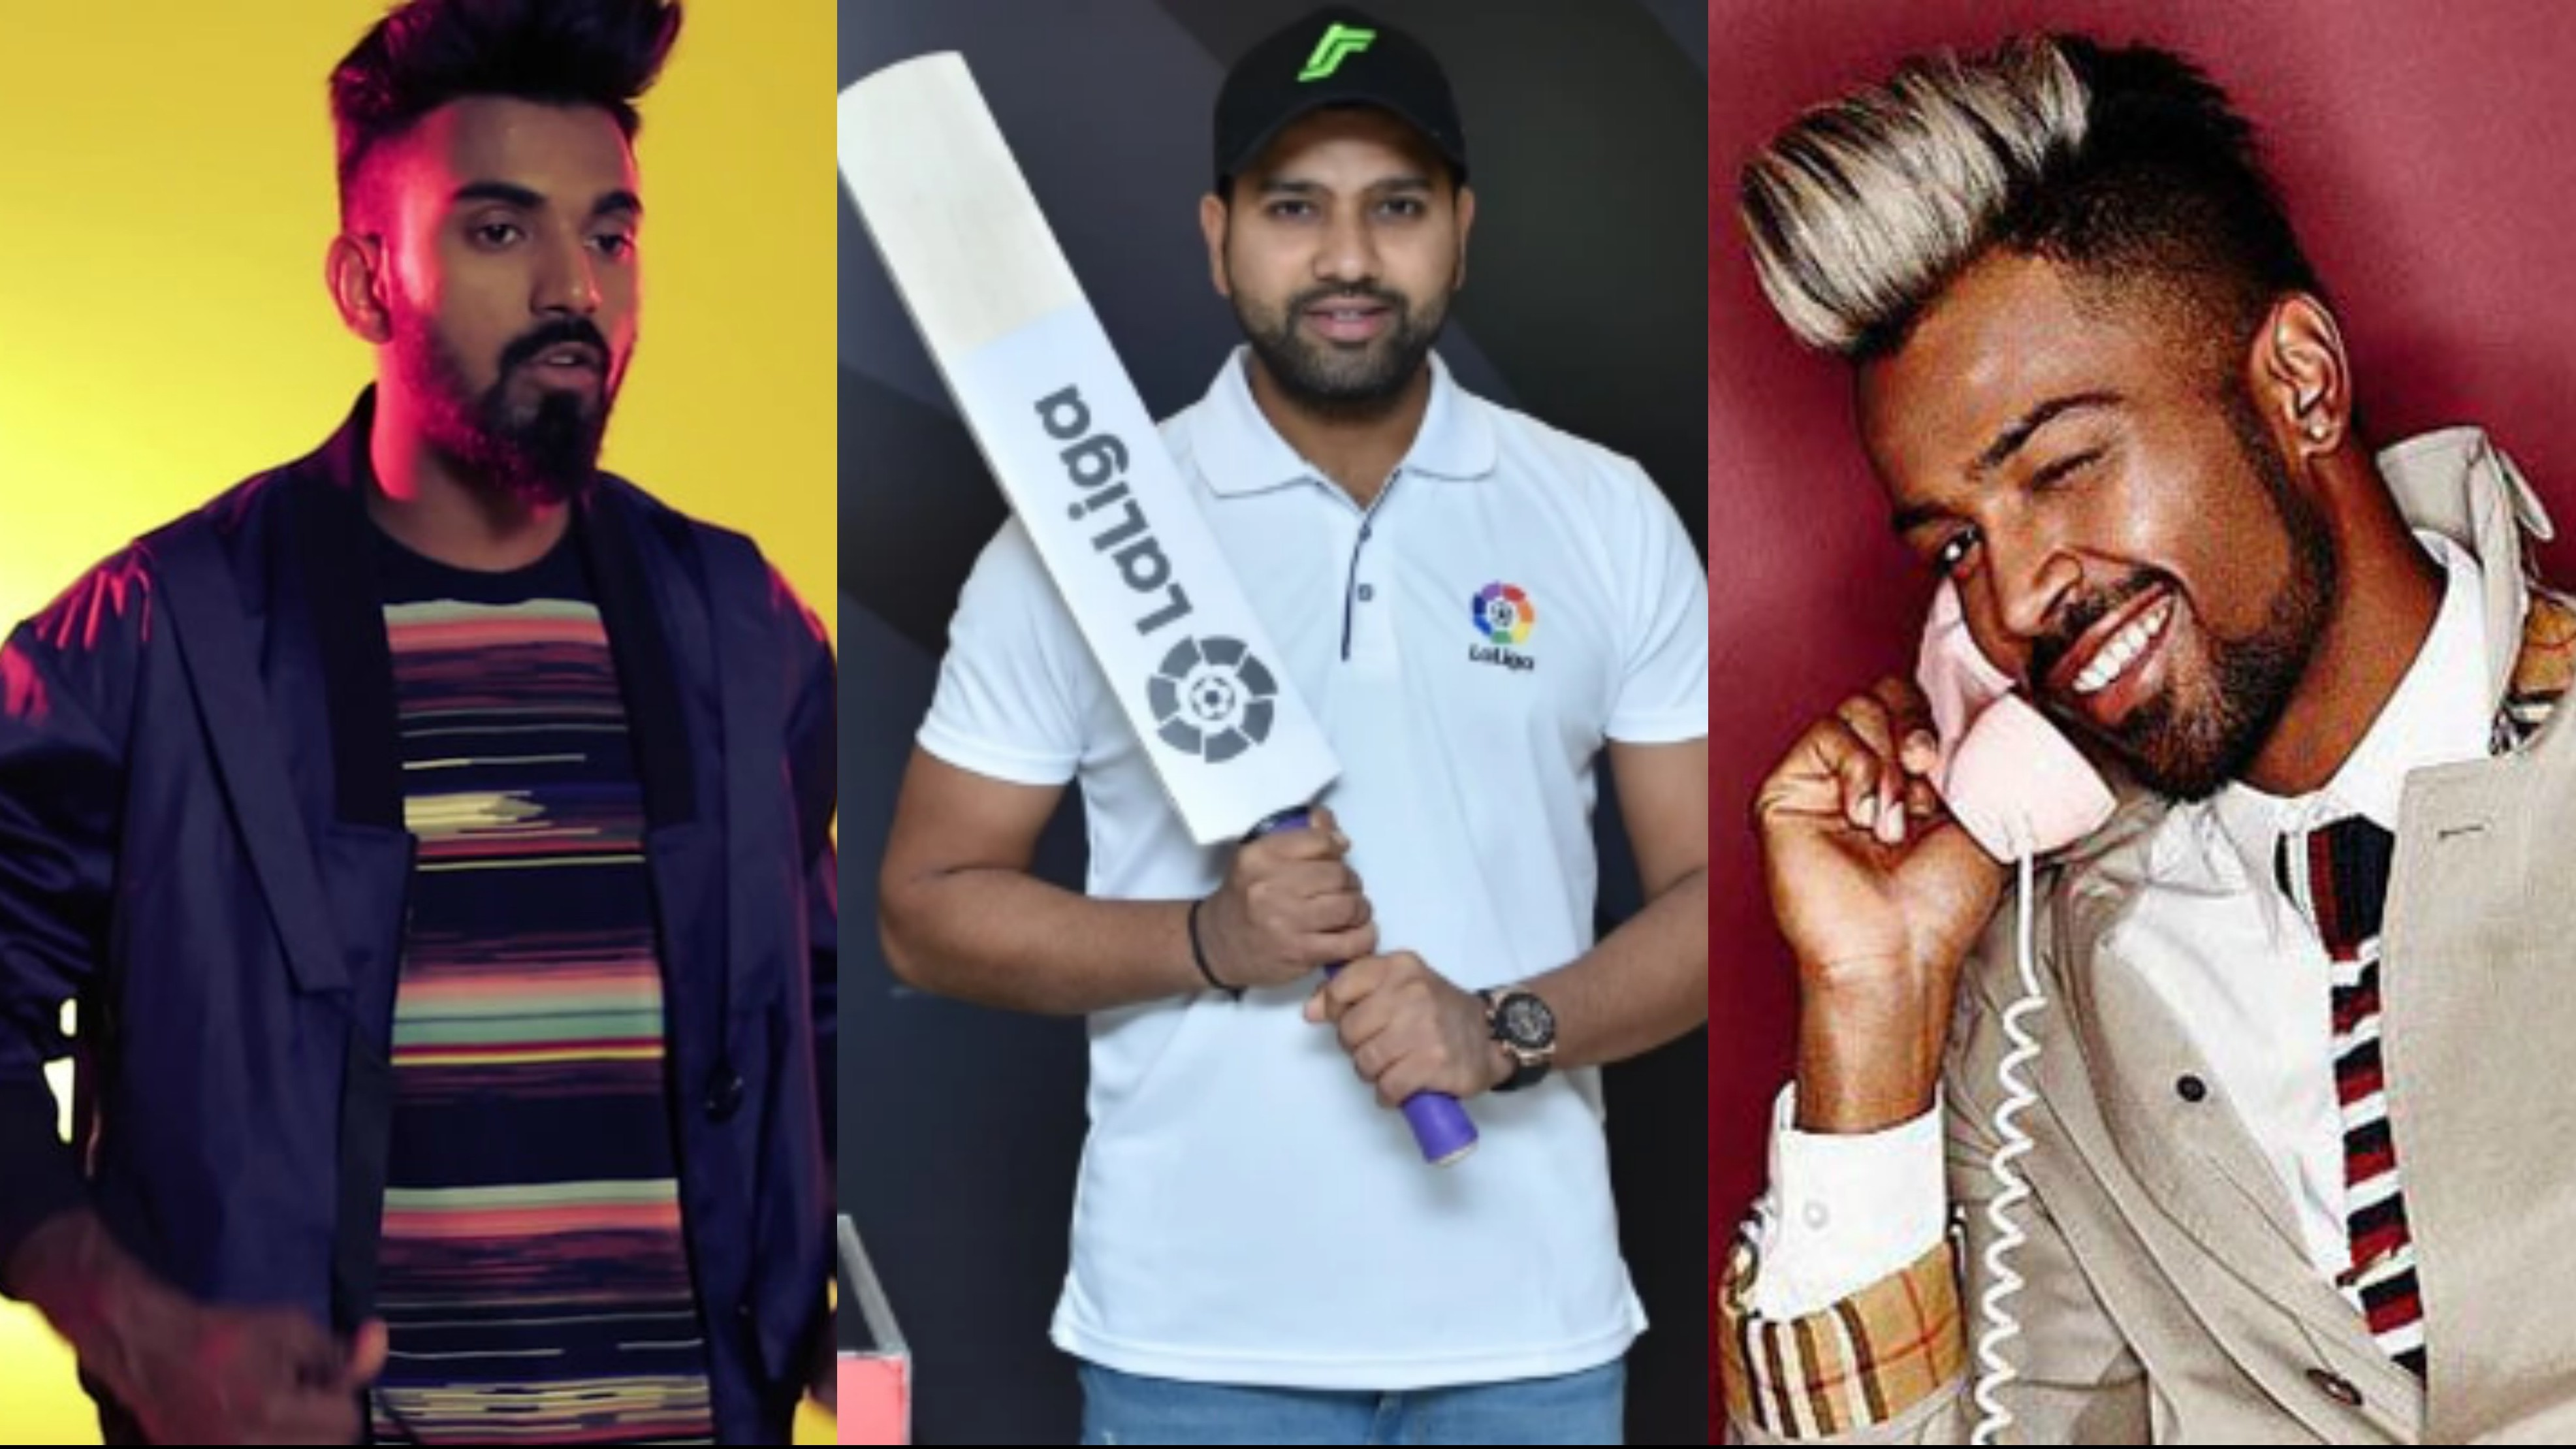 Hardik Pandya and KL Rahul's hairstyles are inspired by footballers, says Rohit Sharma